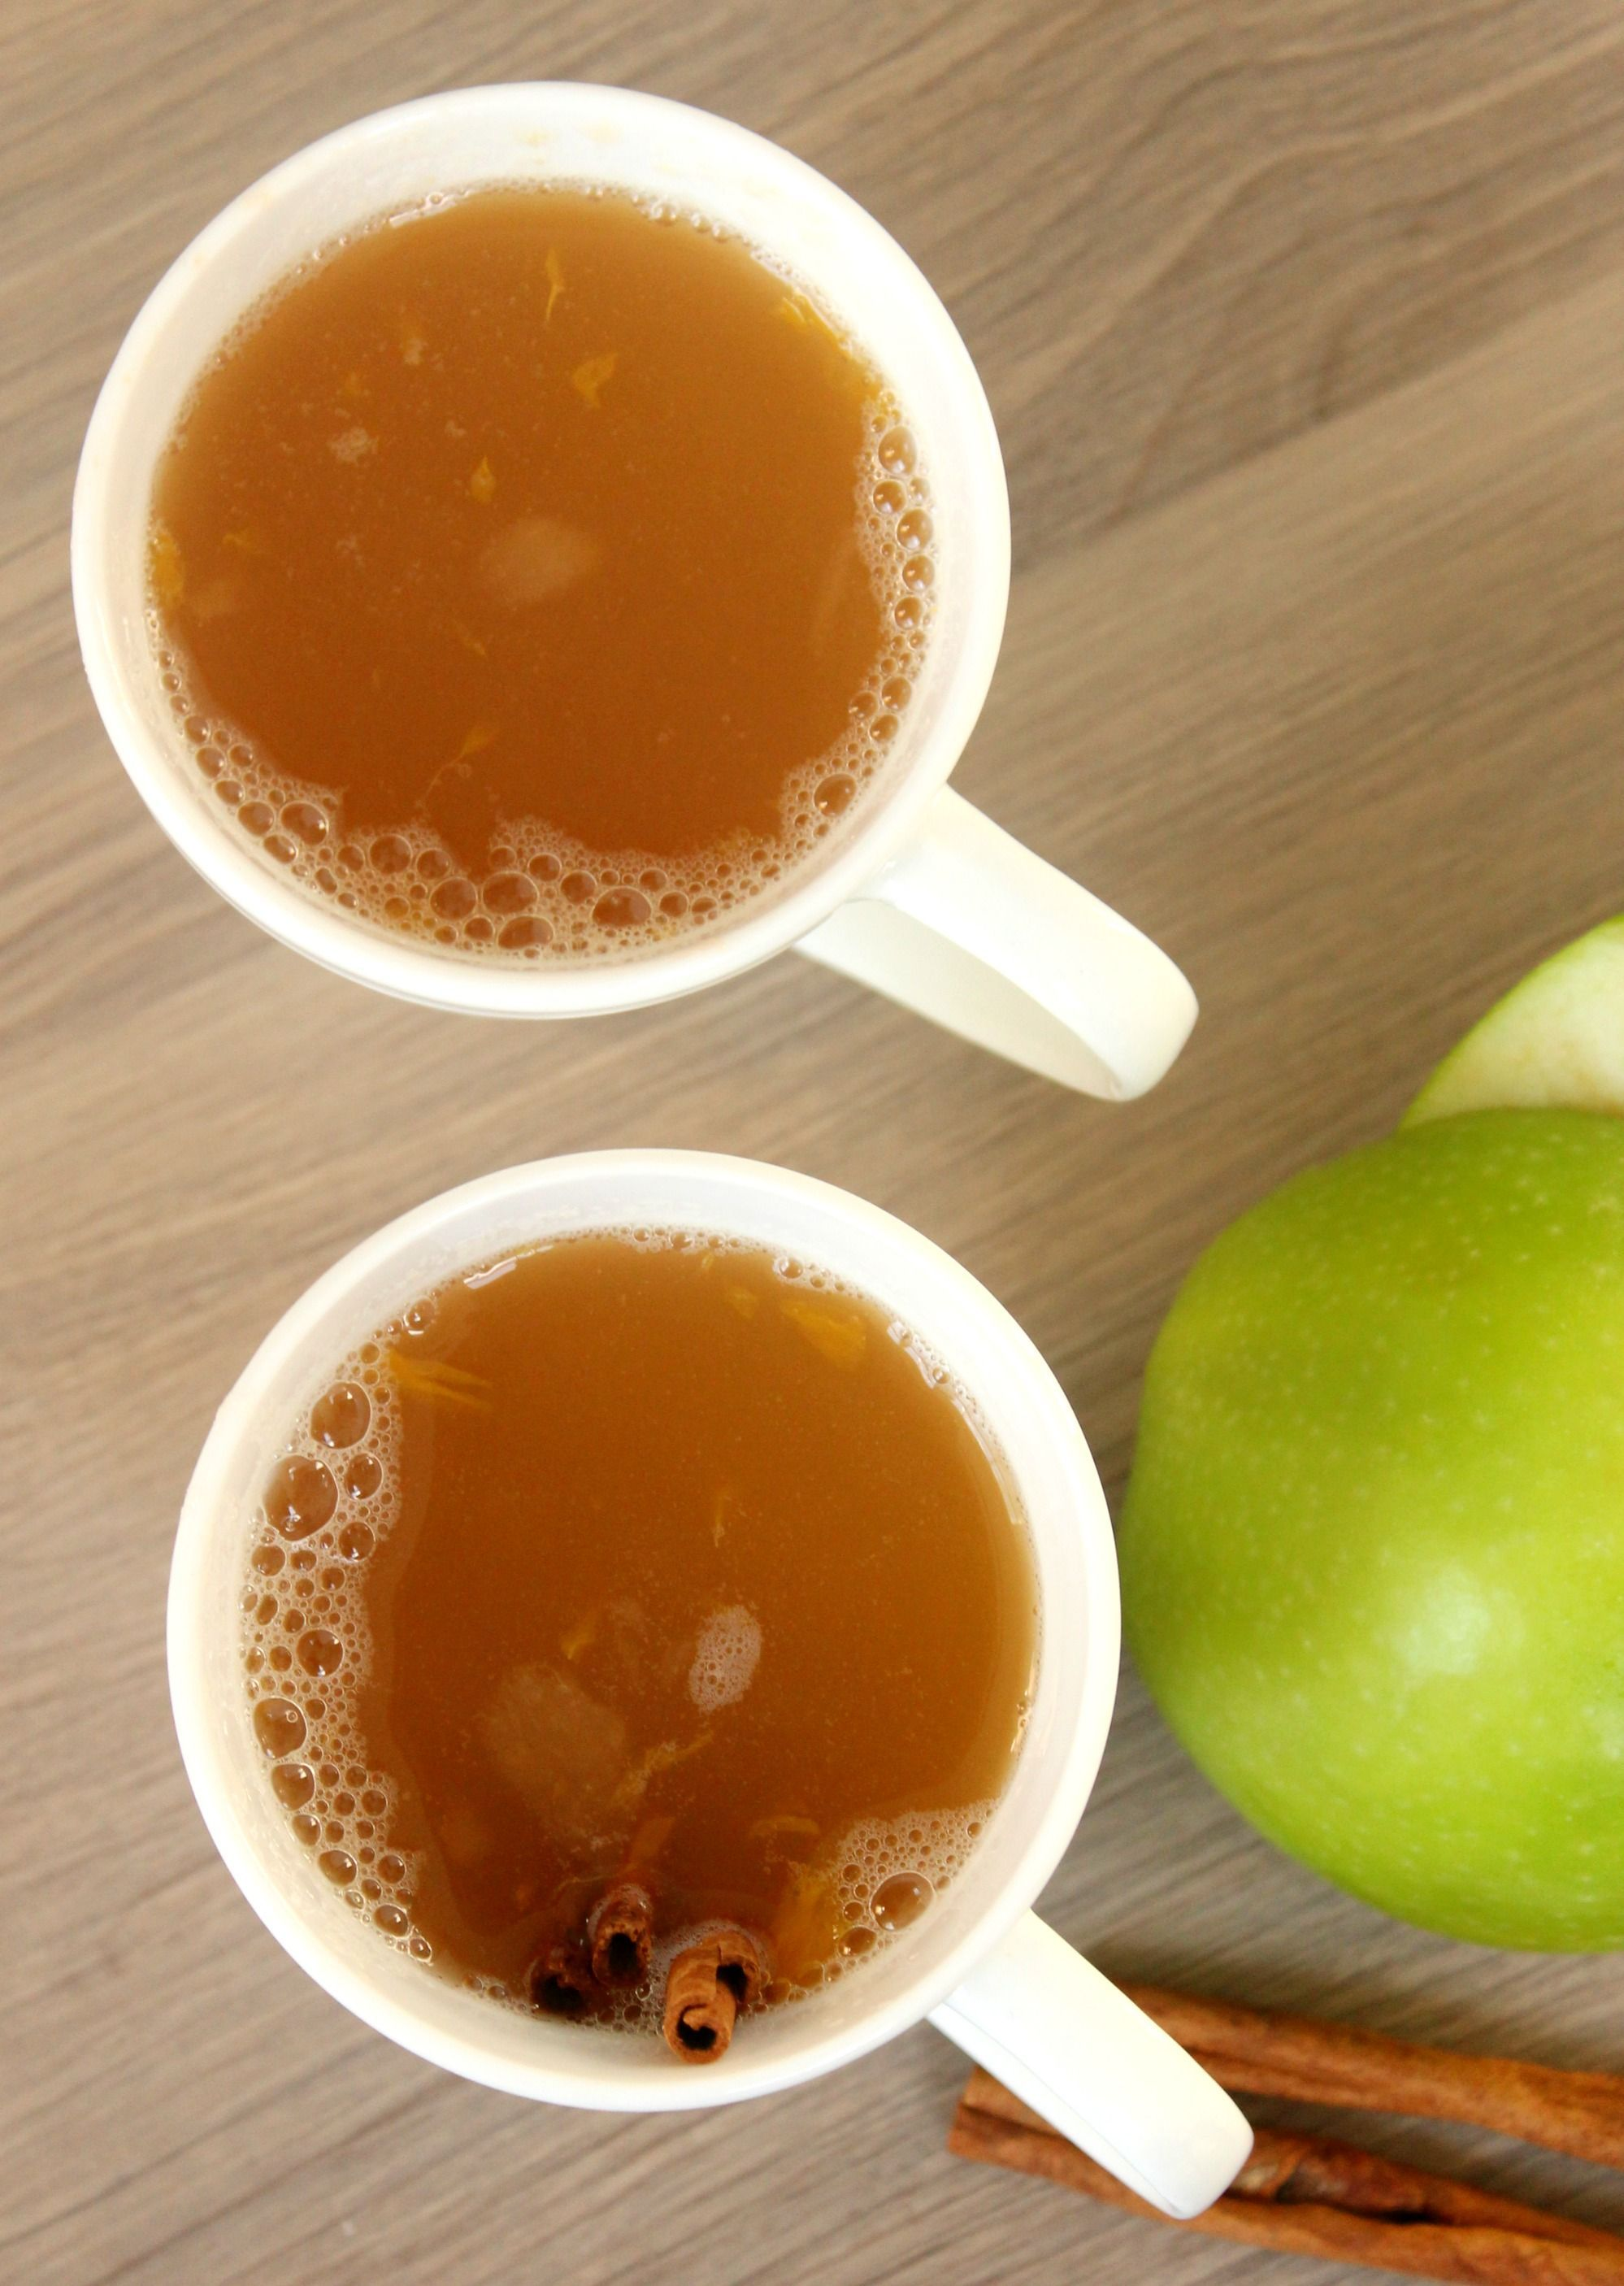 EASY Homemade Slow Cooker Apple Cider Recipe Our s